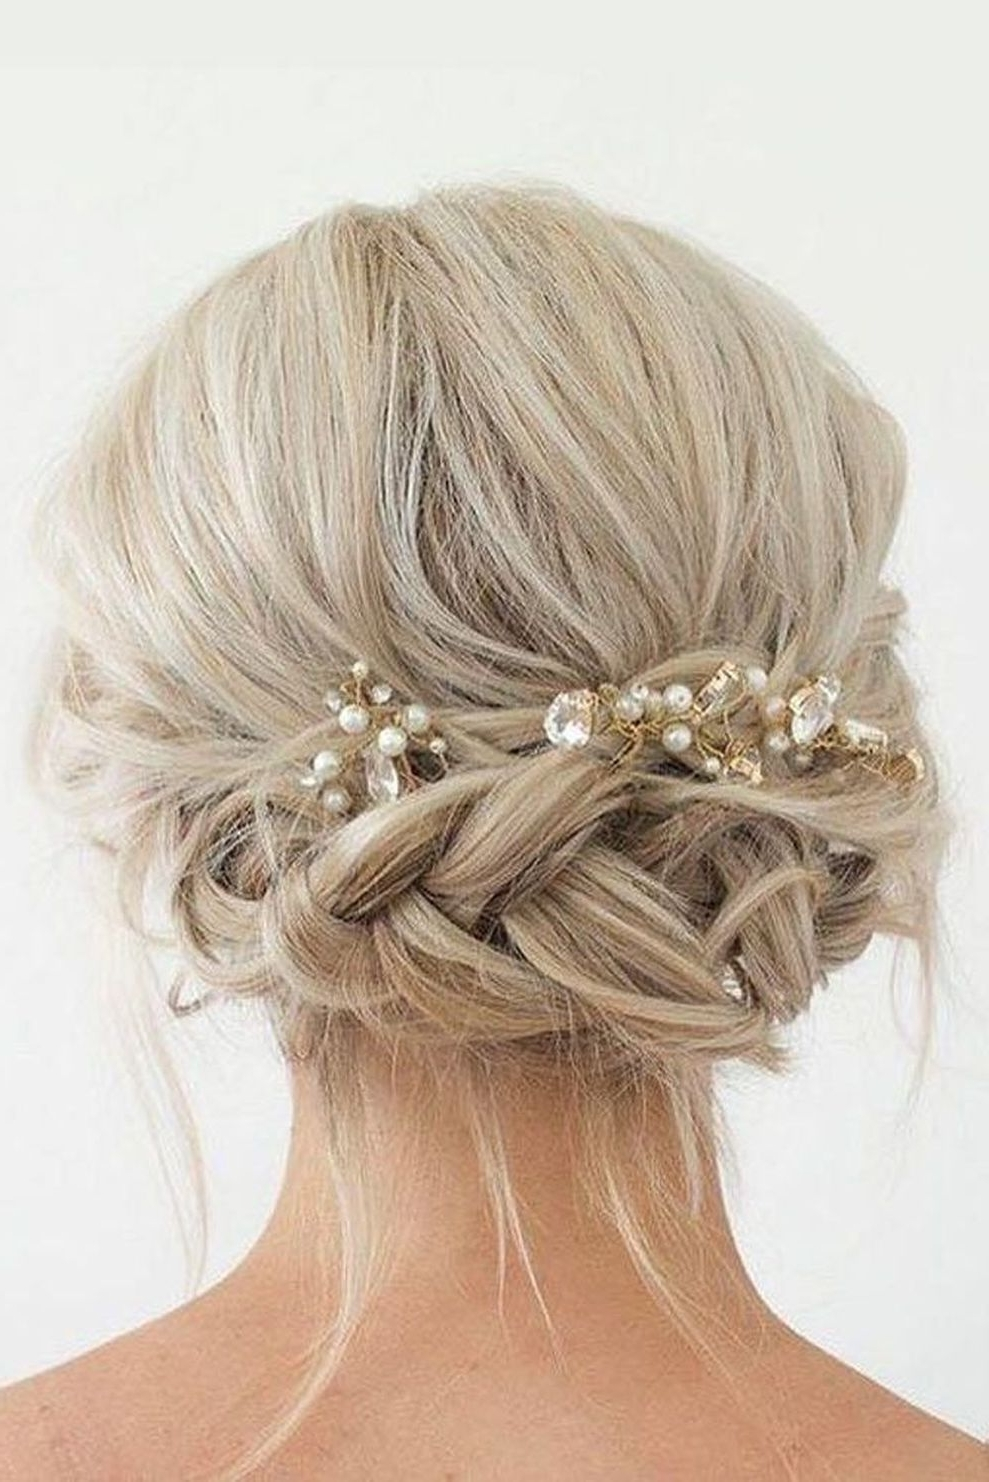 44 Beautiful Wedding Hairstyles Ideas For Medium Length Hair With Regard To Most Popular Wedding Hairstyles For Chin Length Hair (View 3 of 15)